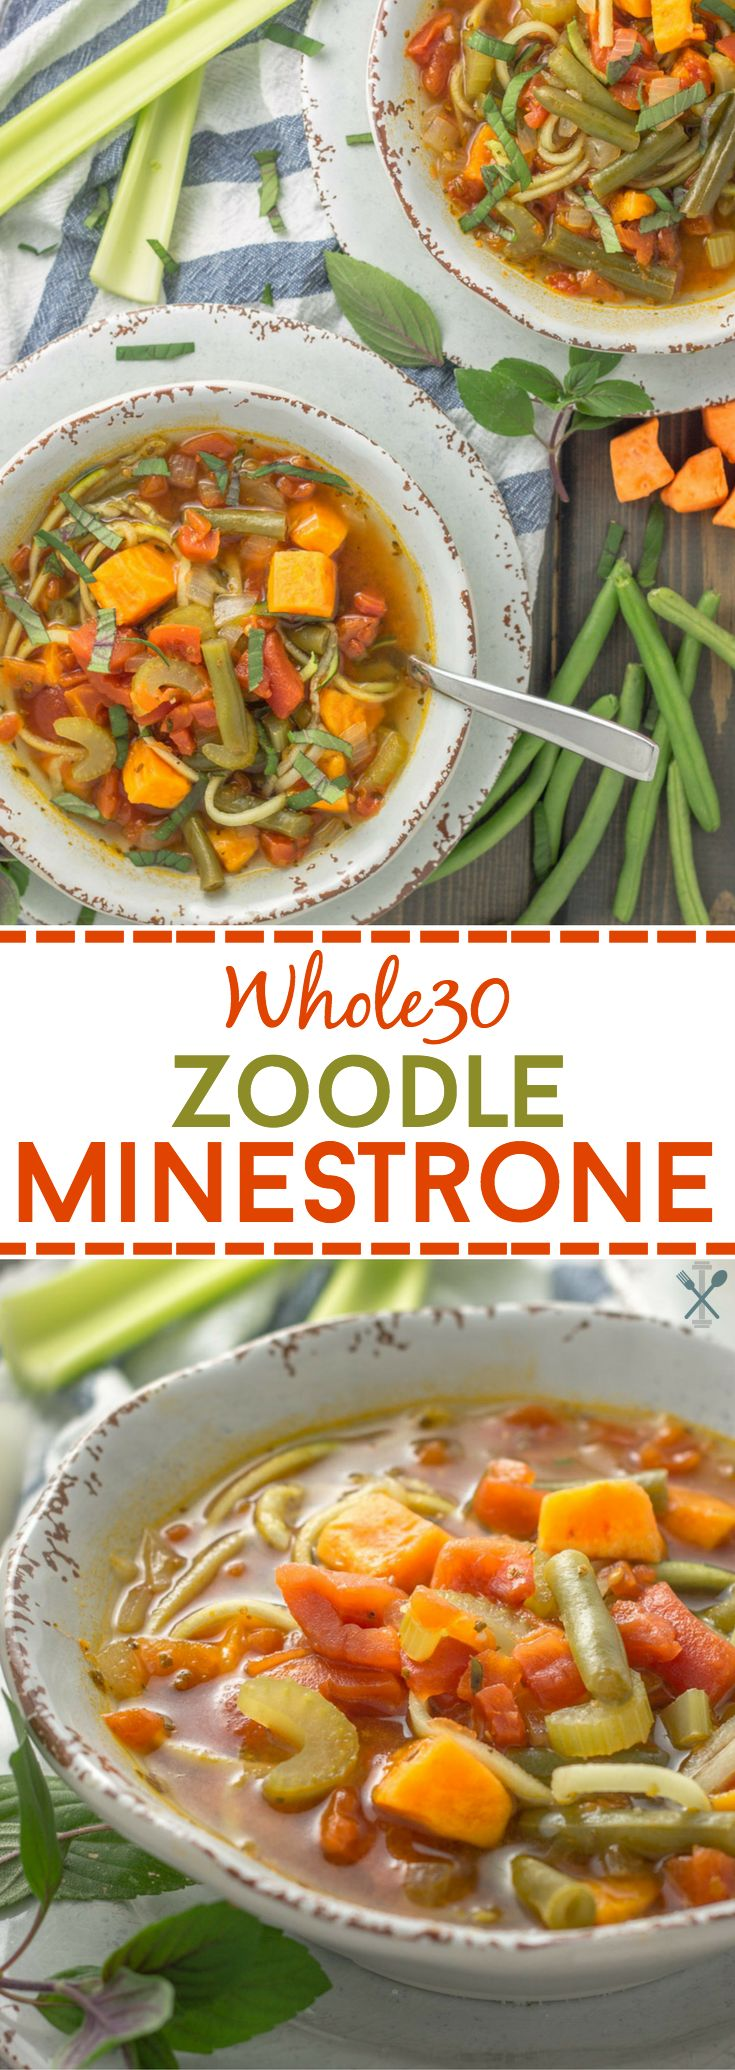 This vegetarian Whole30 soup is inspired by classic minestrone, using sweet potatoes and zucchini noodles! A delicious and quick fall soup recipe in under 40 minutes!